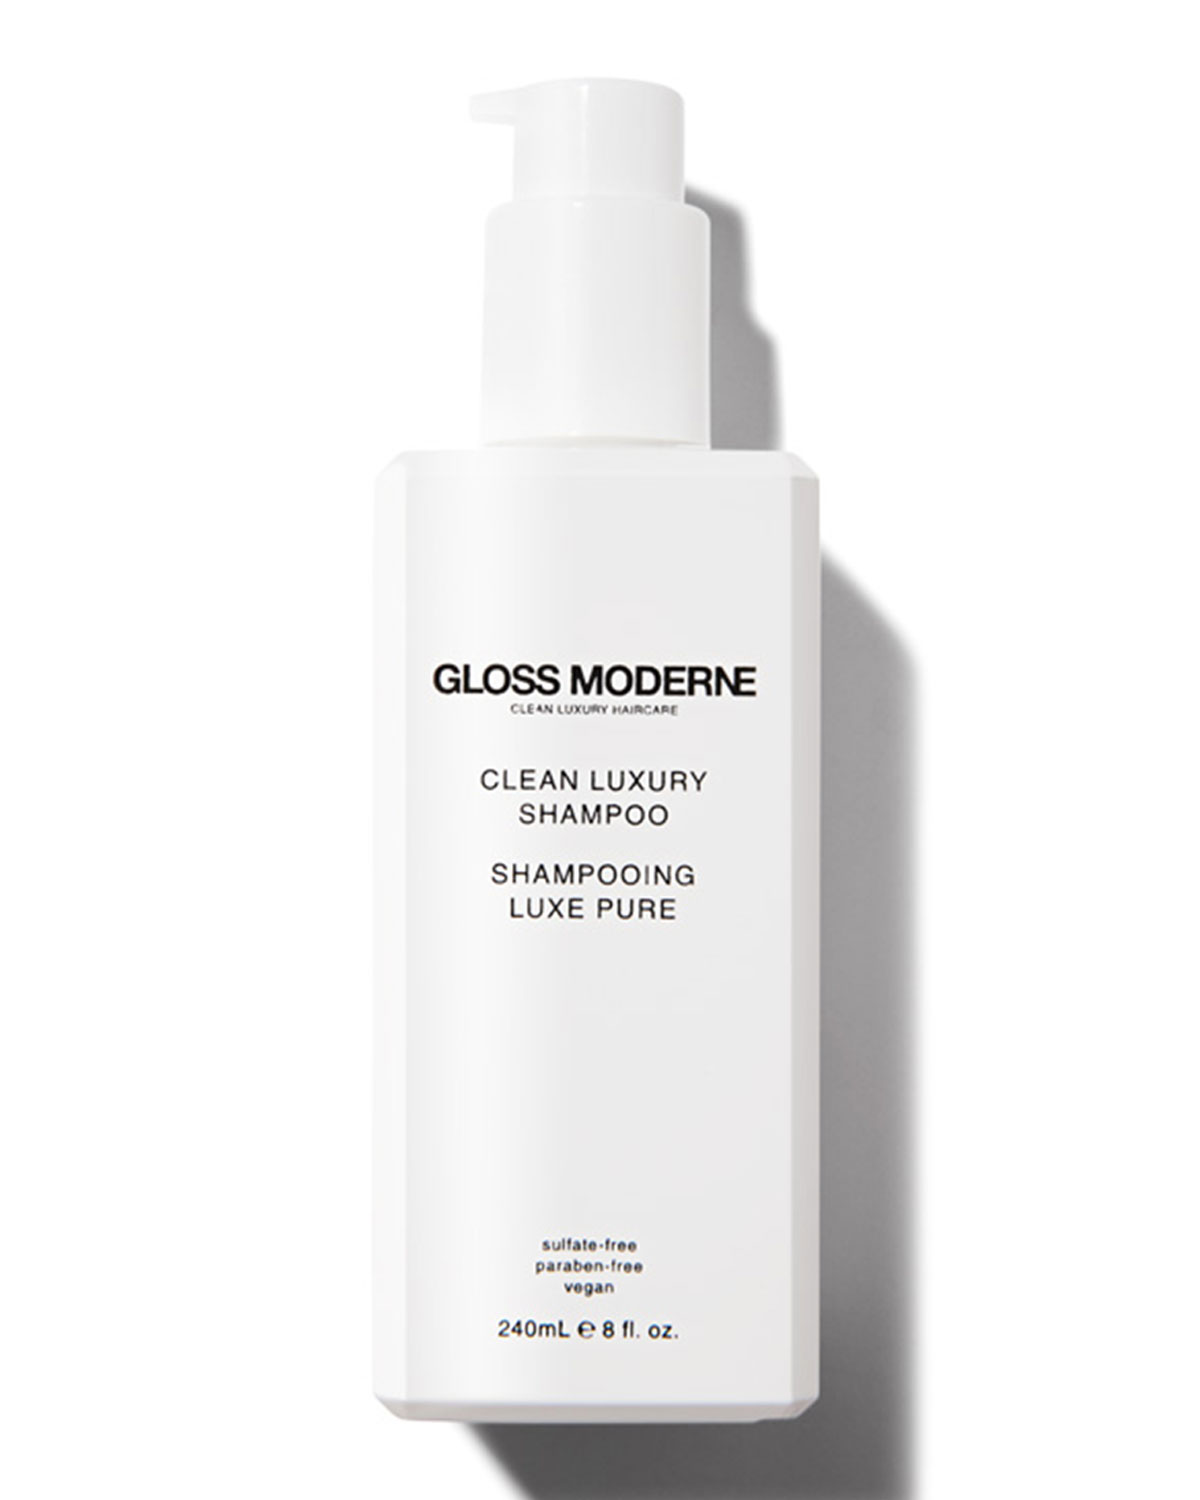 GLOSS MODERNE Clean Luxury Shampoo, 8.0 Oz./ 240 Ml